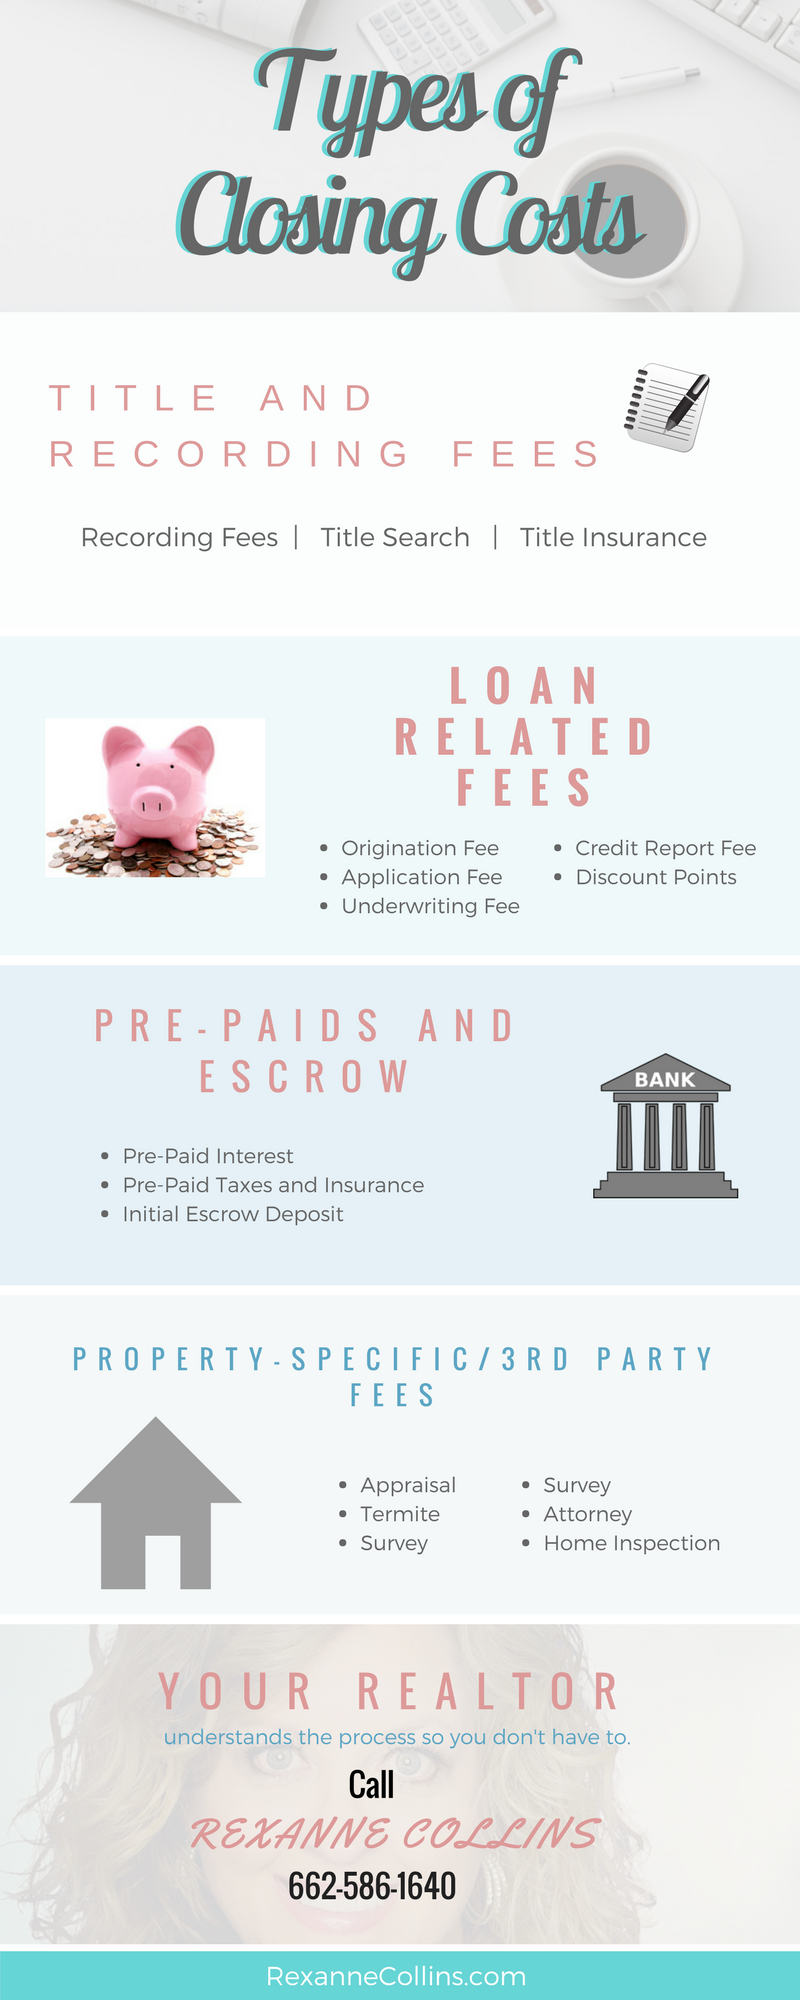 Real Estate Infographic Closing Costs